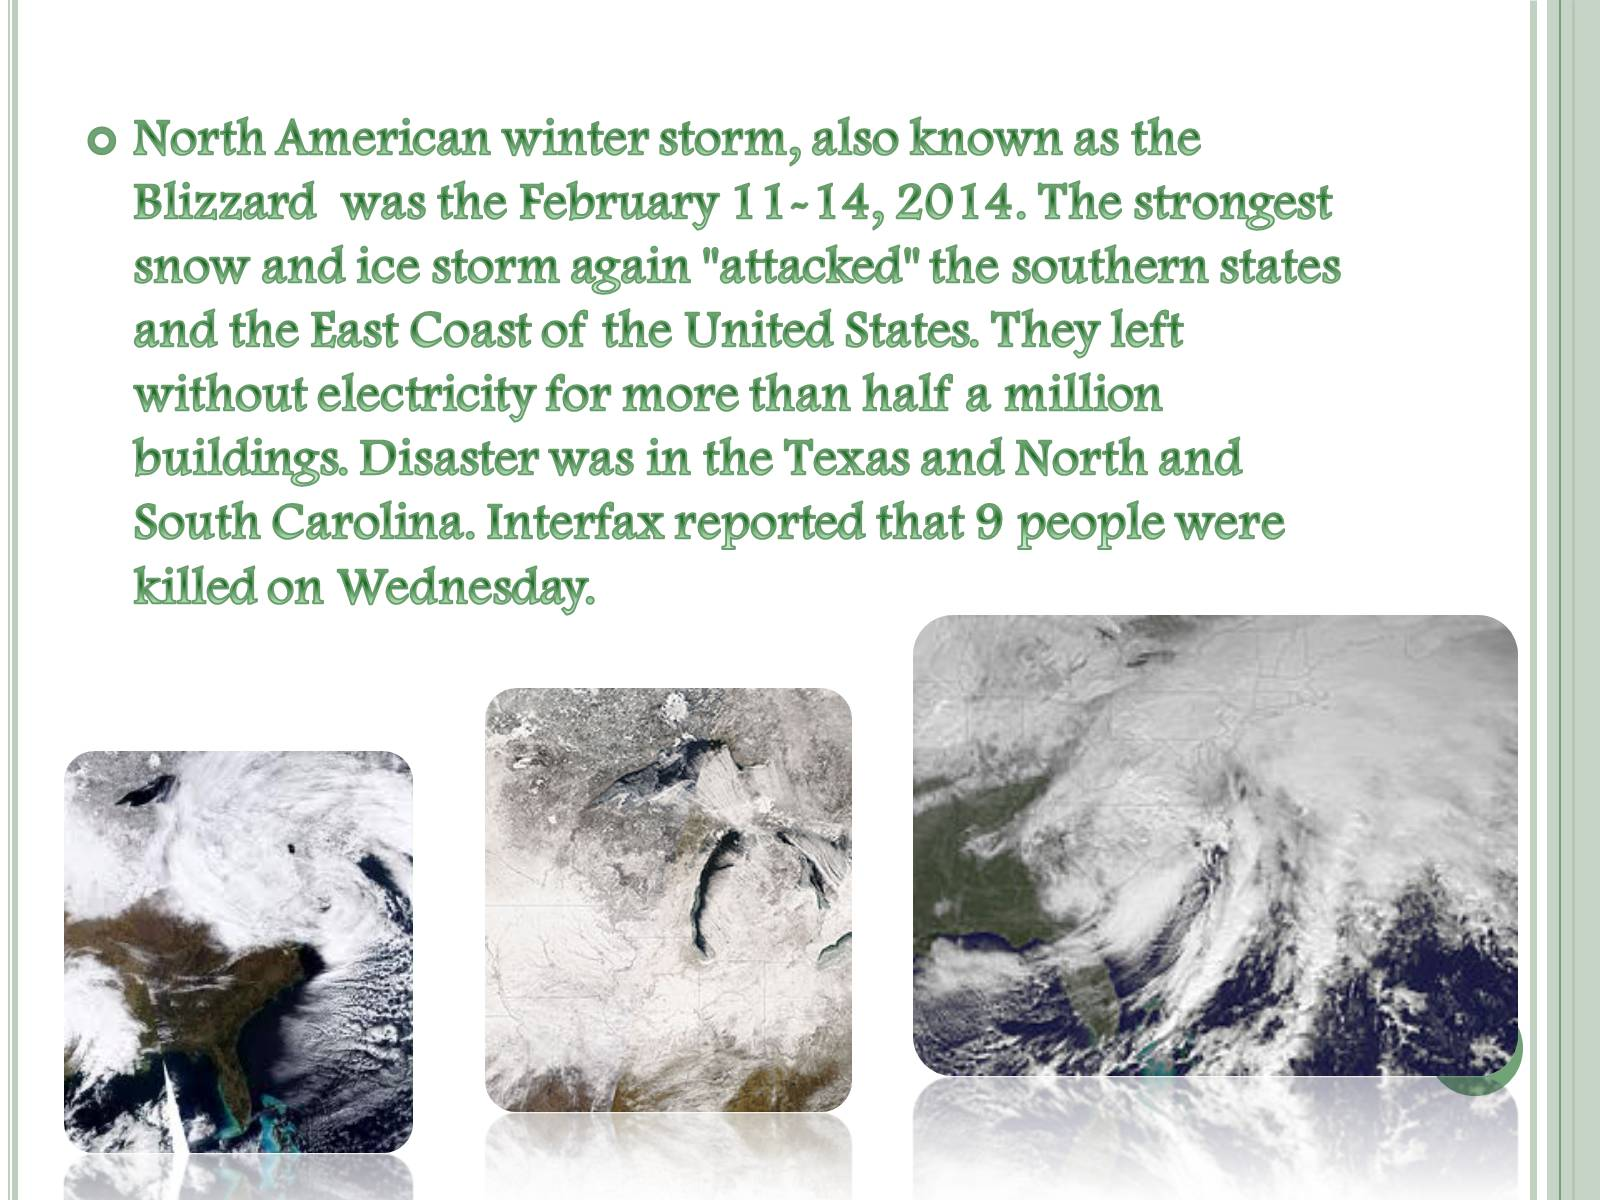 Презентація на тему «Natural disaster in the U.S. North American winter storm» - Слайд #2